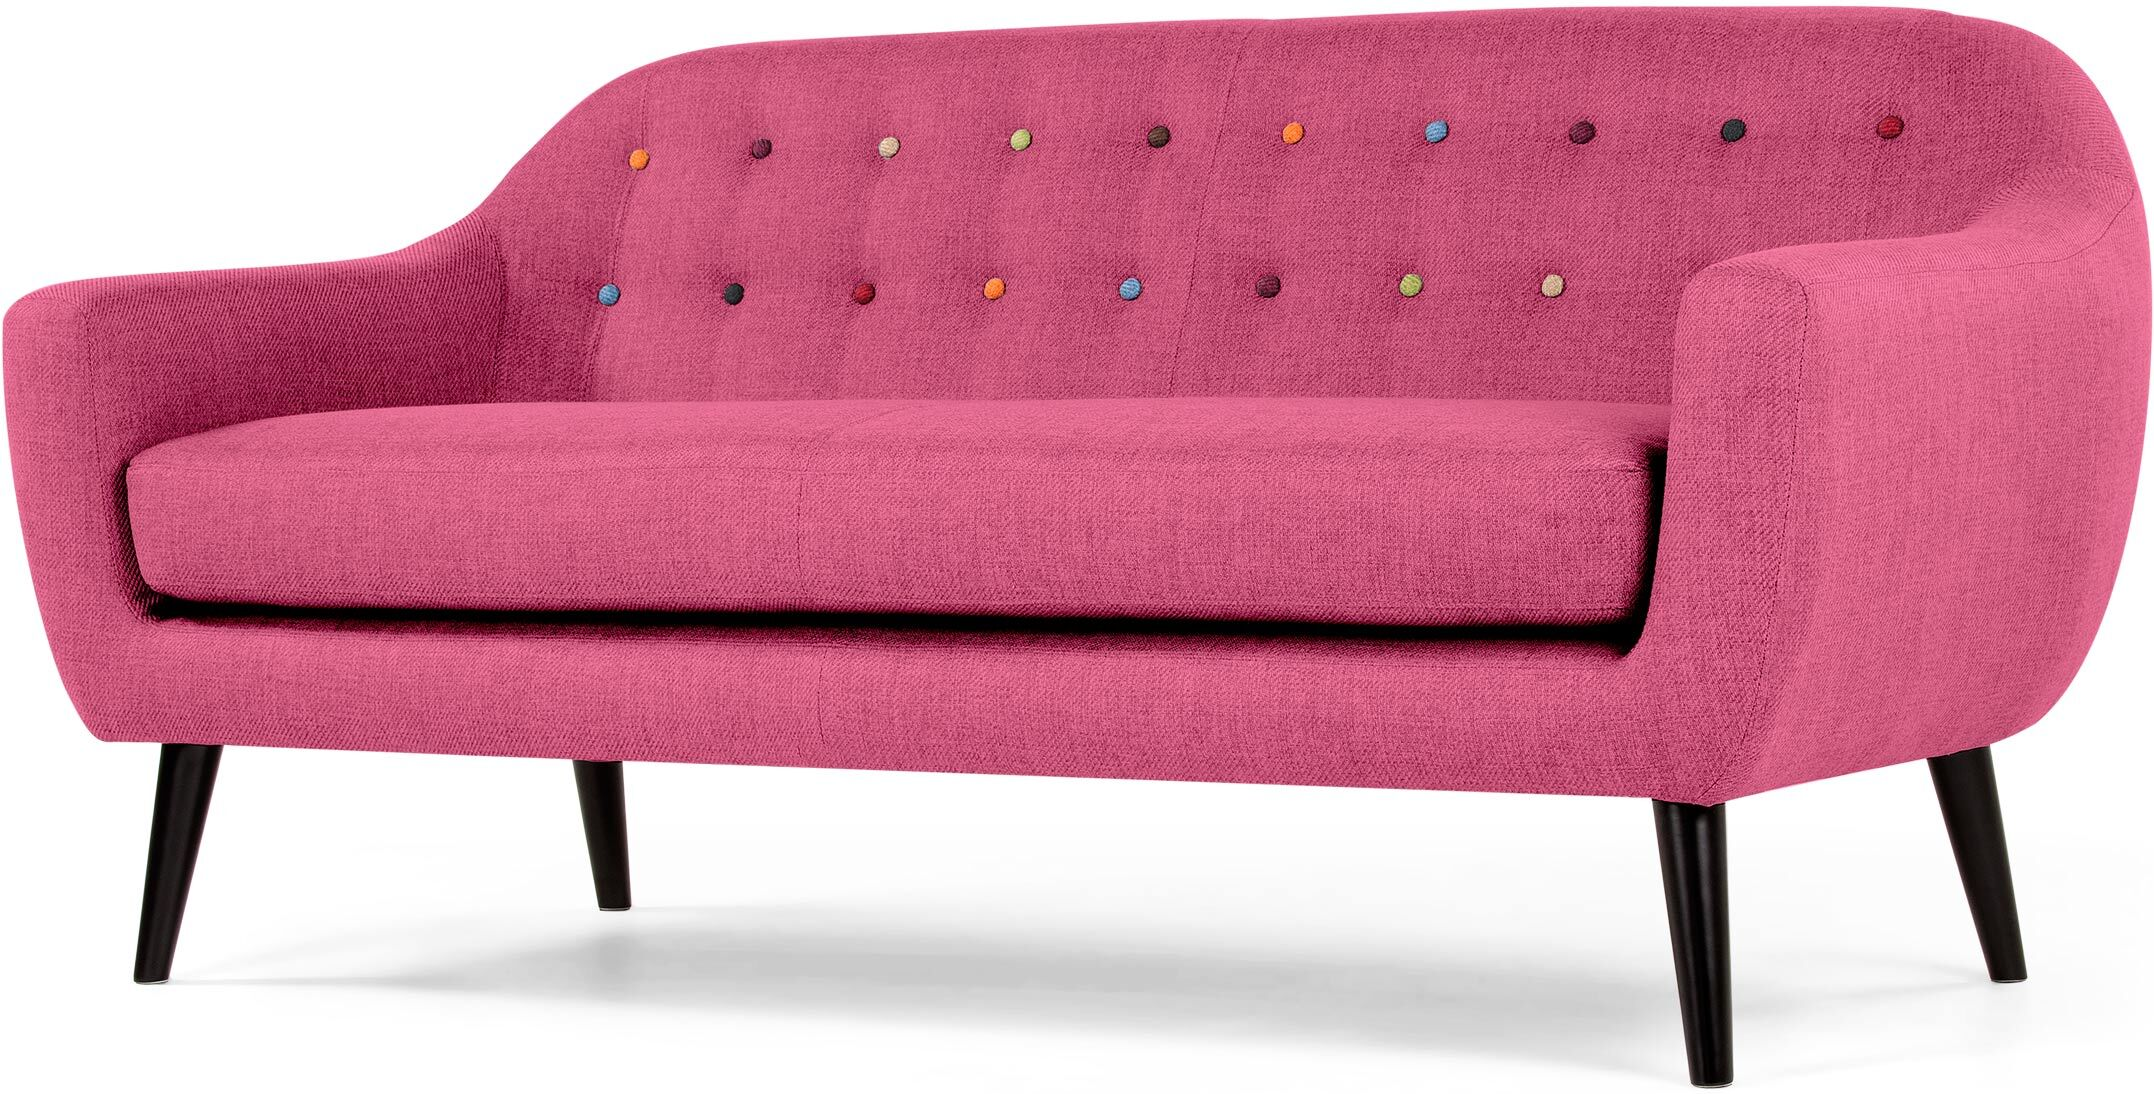 pink sofa browse uk triple play reclining shop for cheap beds and save online